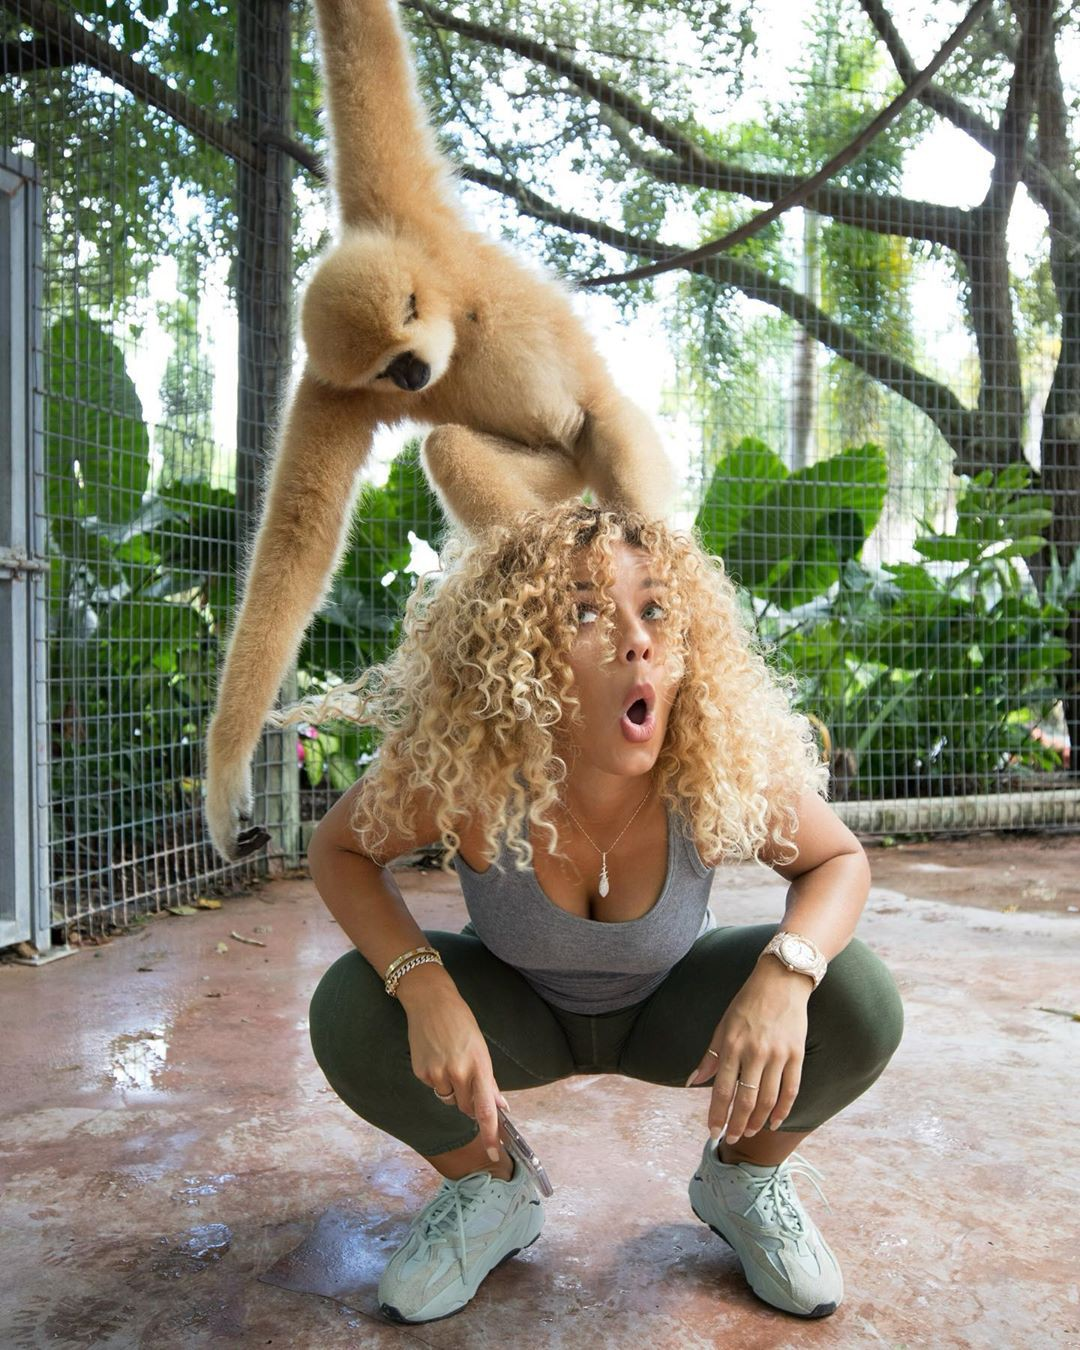 Jena Frumes sportswear colour dress, legs pic, new world monkey